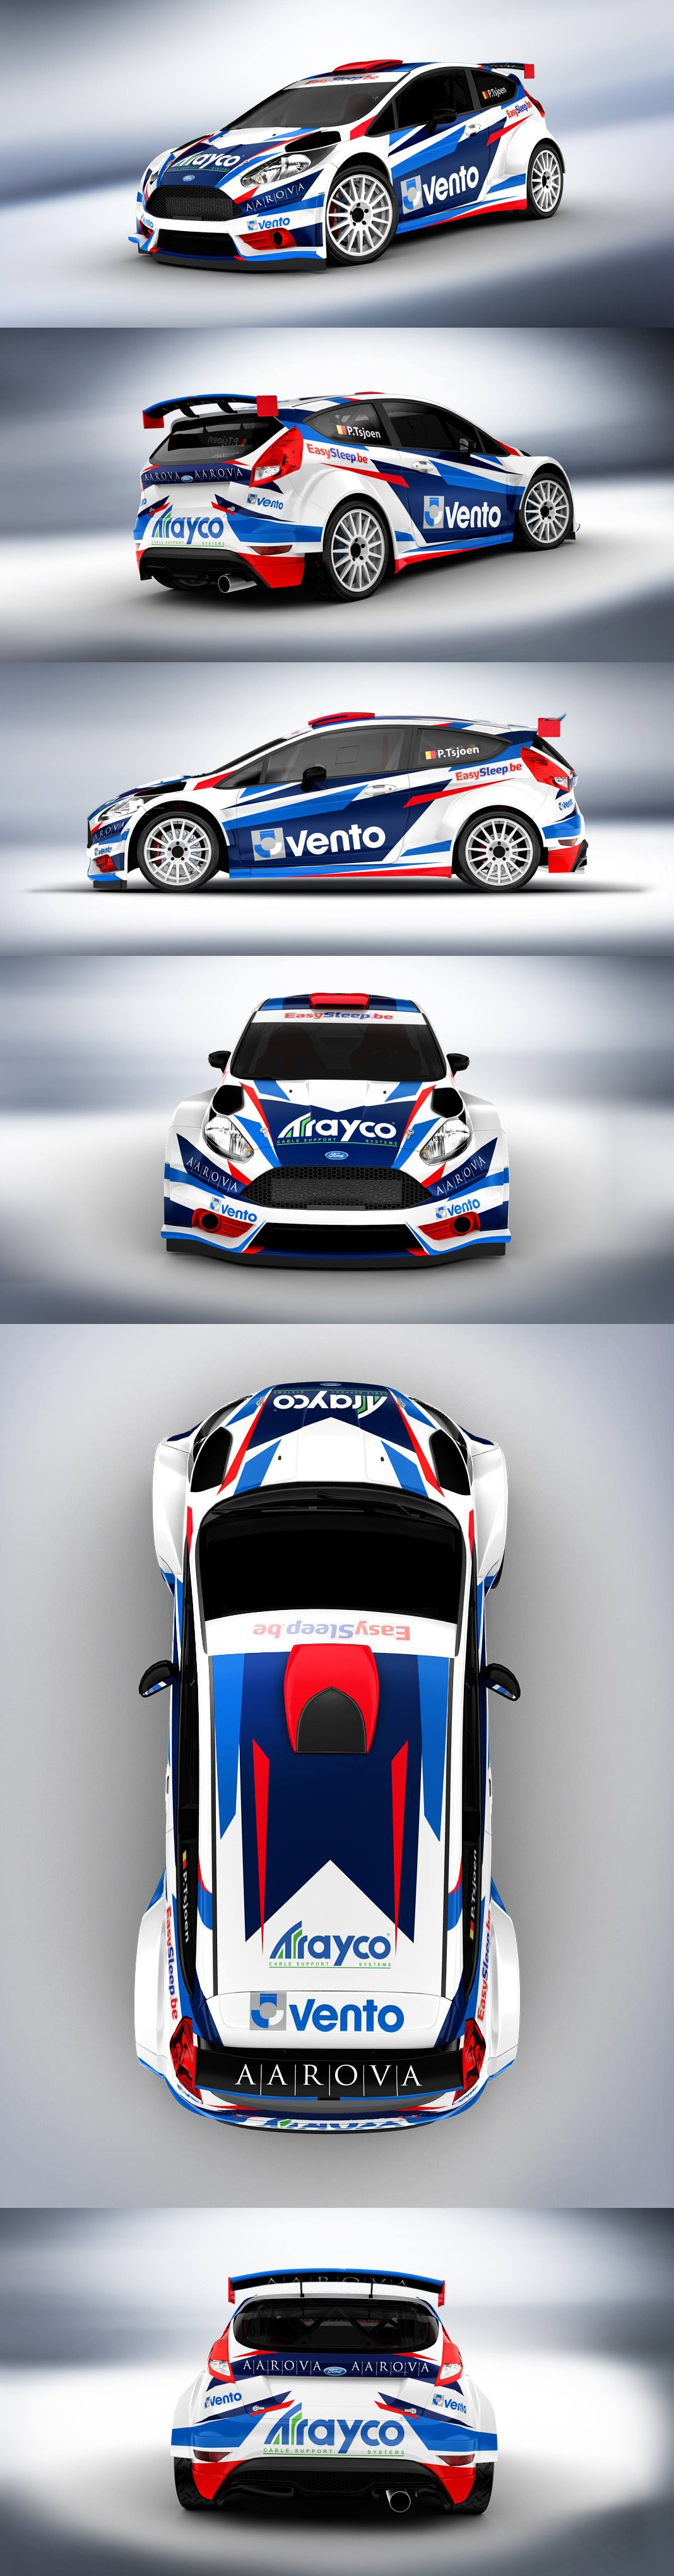 Ford Fiesta Racing Livery We Collect And Generate Ideas Ufx Dk Racing Car Design Vehicle Signage Car Wrap Design [ 4080 x 1068 Pixel ]